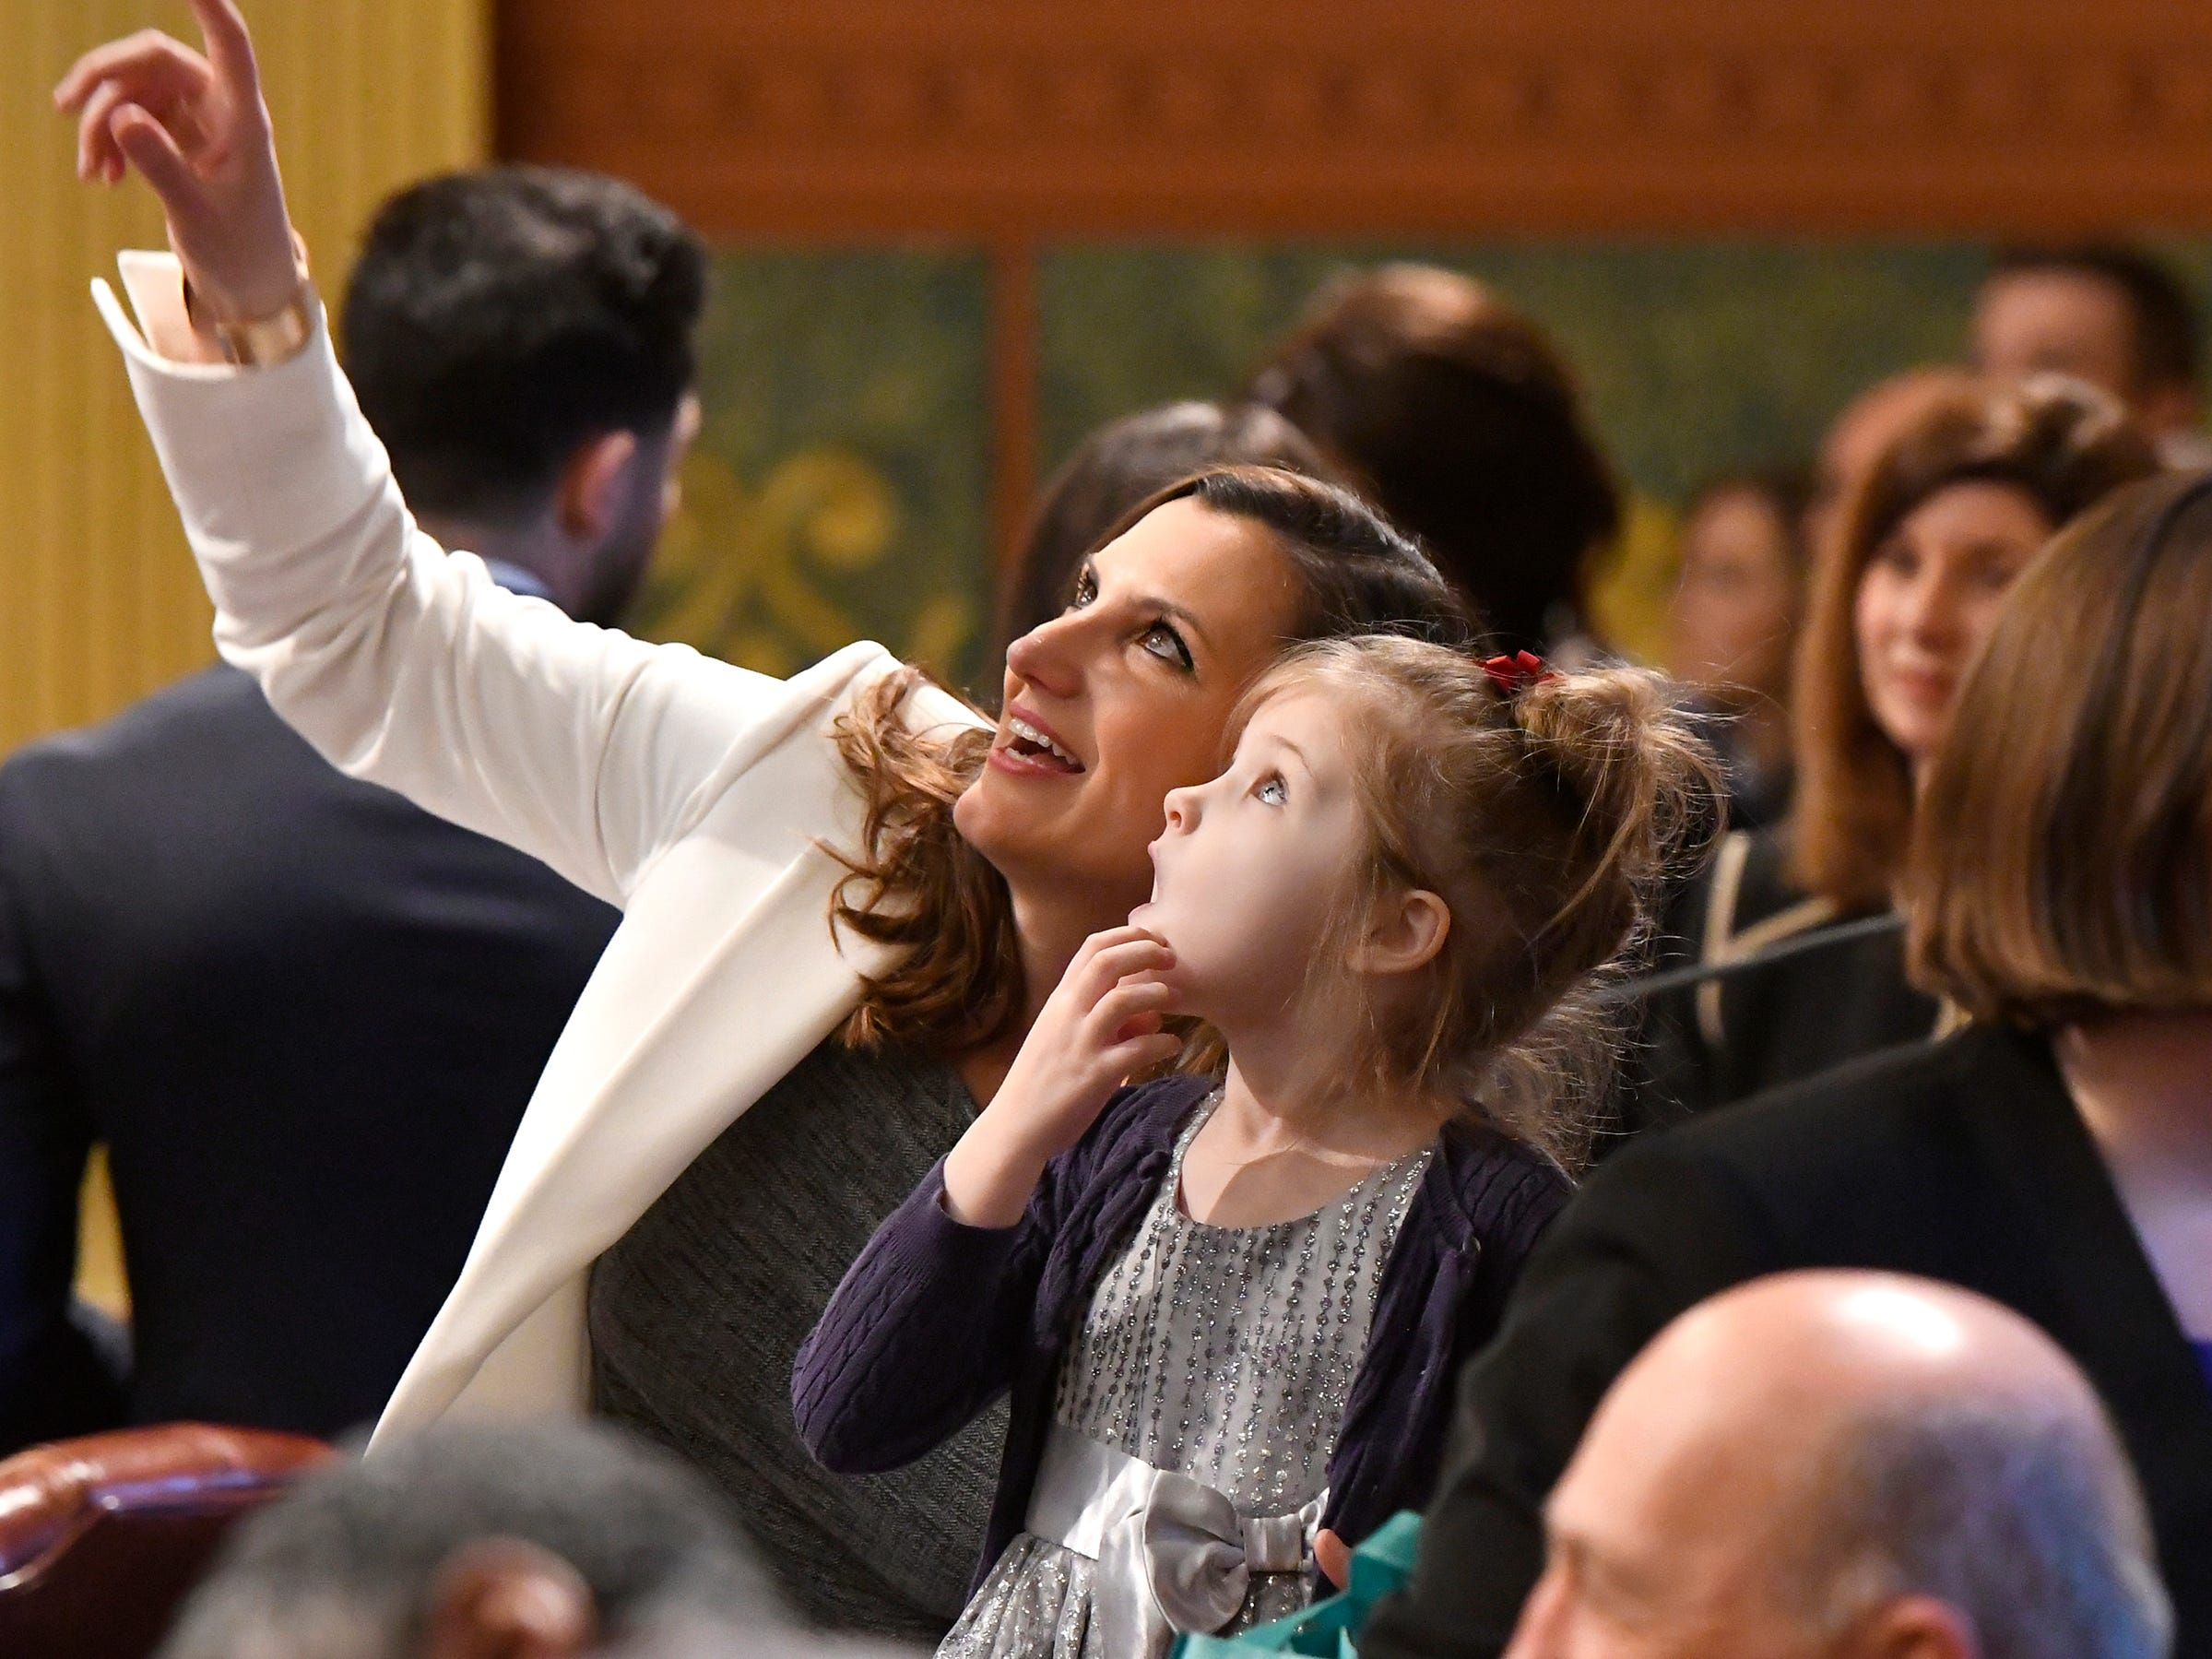 Rep. Kristy Pagan, D-Canton, shows niece Evelyn, 5, around the House chambers before the opening ceremonies for the 100th Legislature.